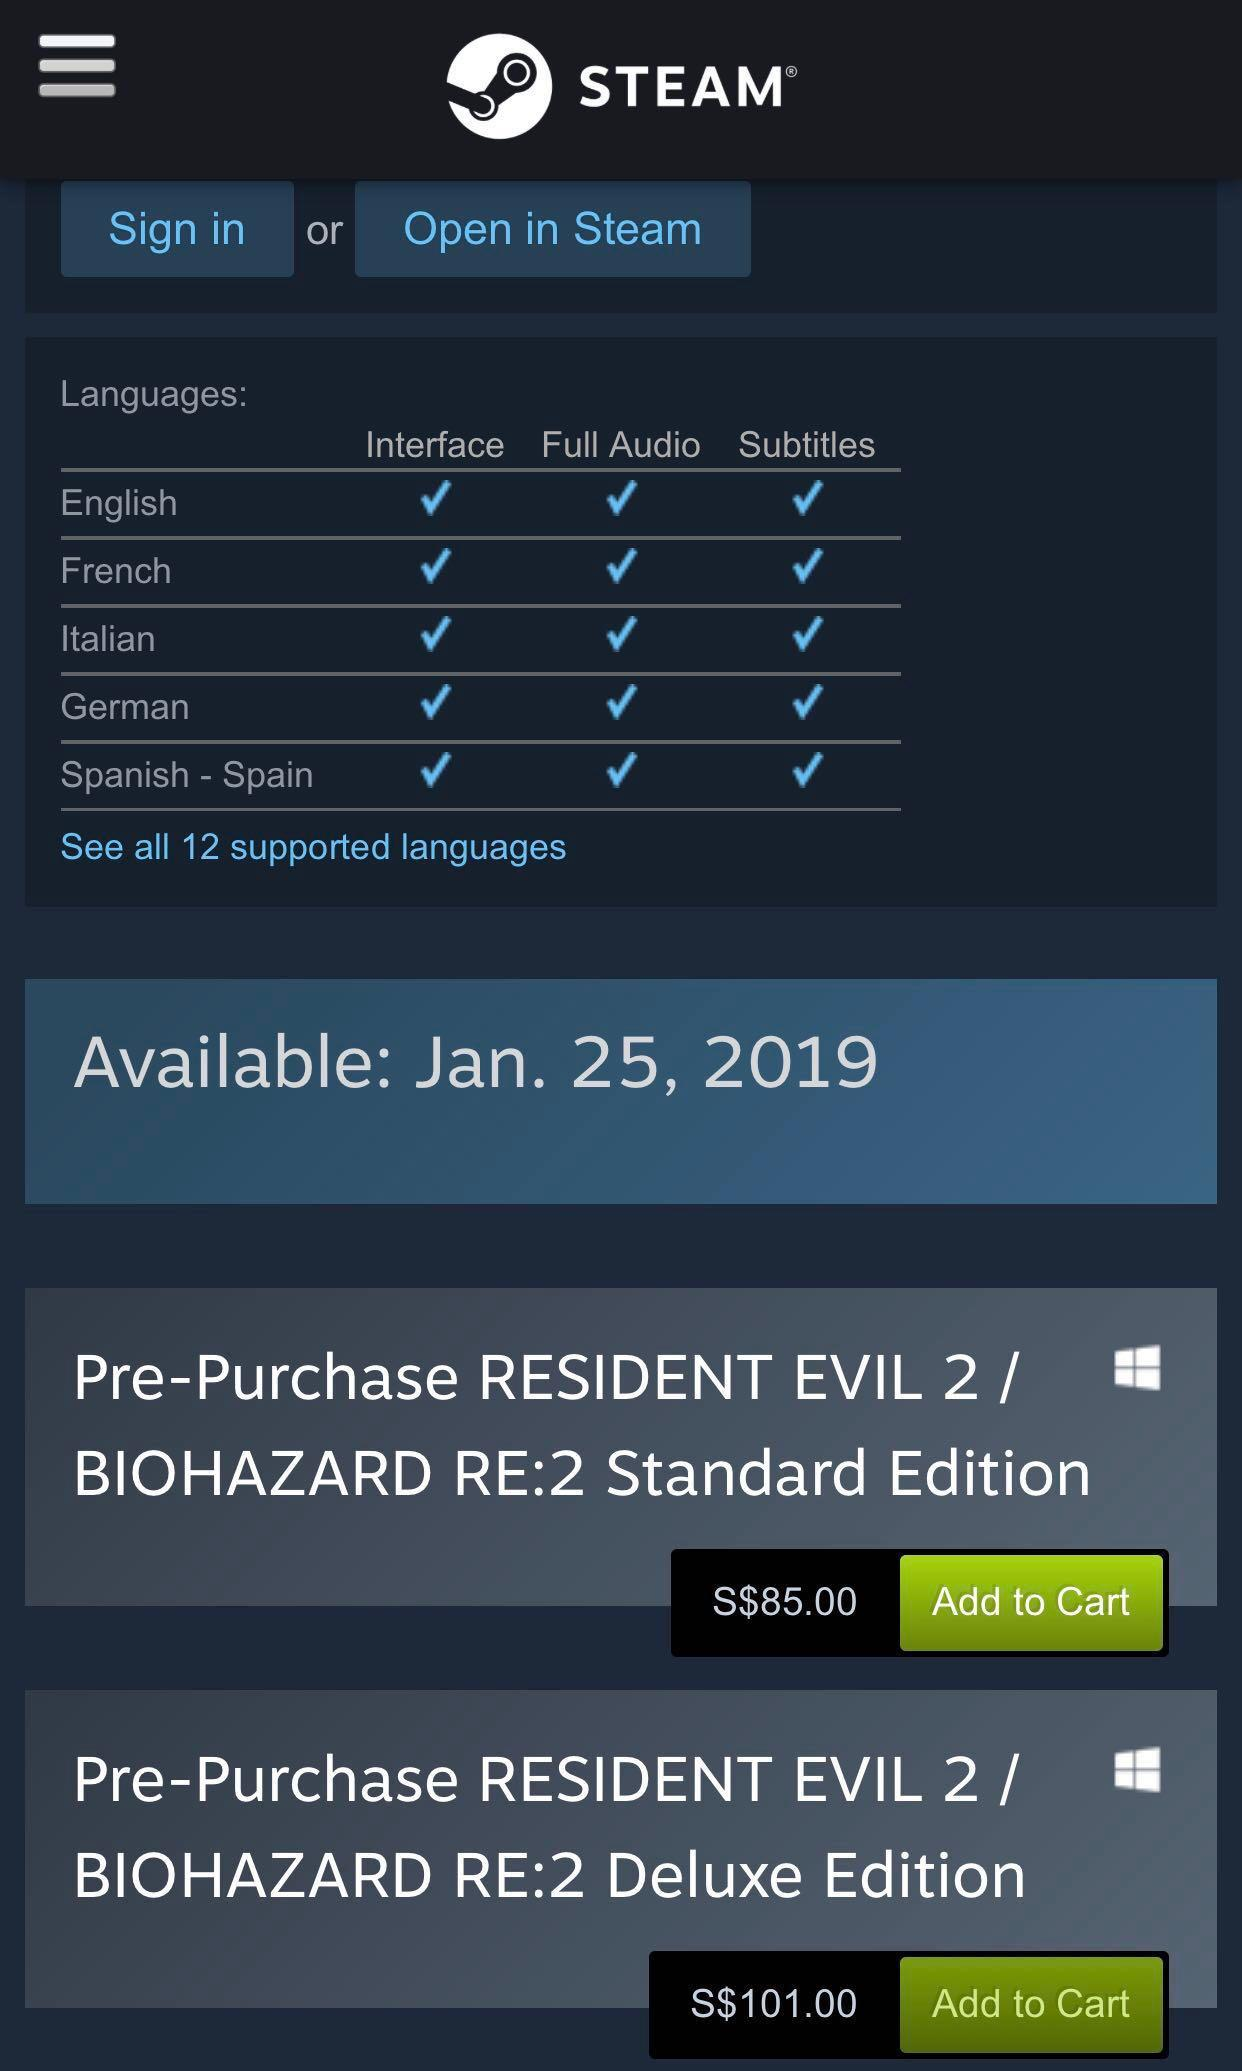 Resident Evil 2, Devil May Cry 5, Tom Clancy's The Division